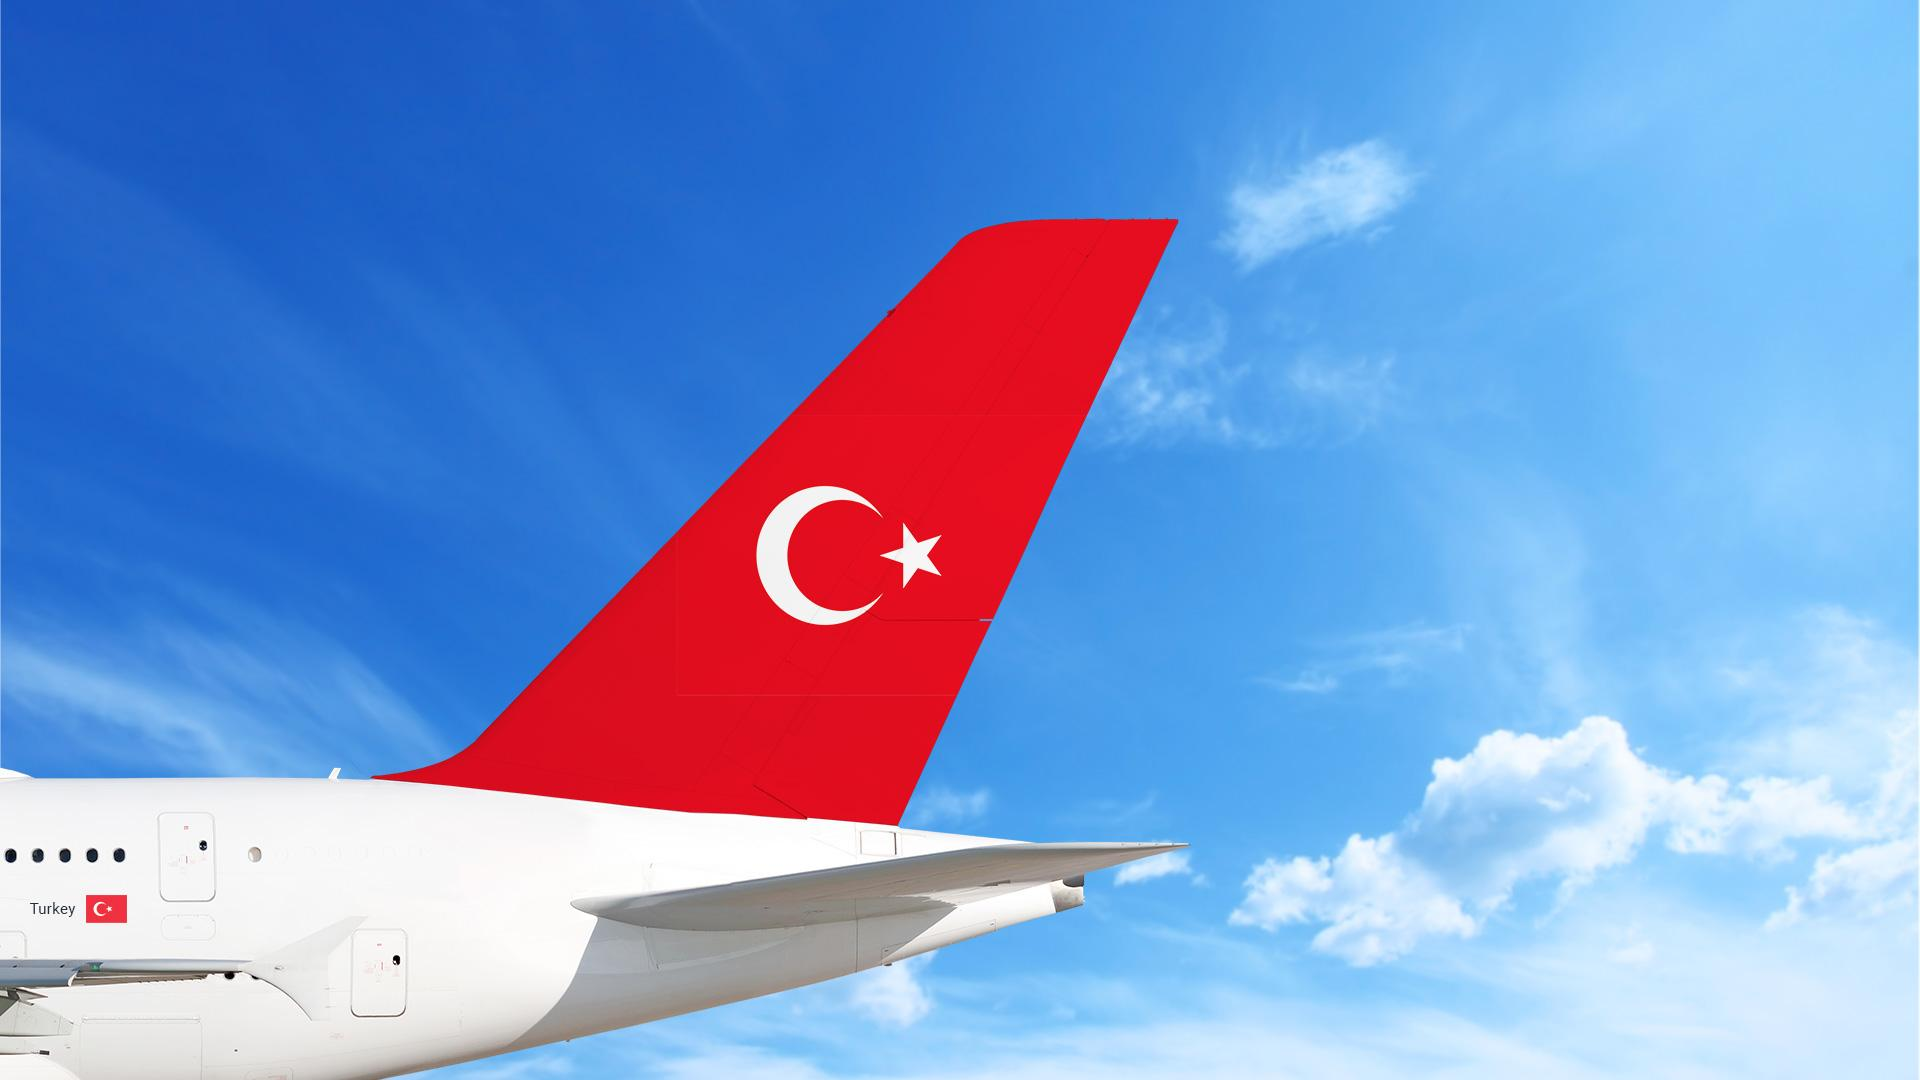 Airplane with Turkey's Flag (TR) on the tail